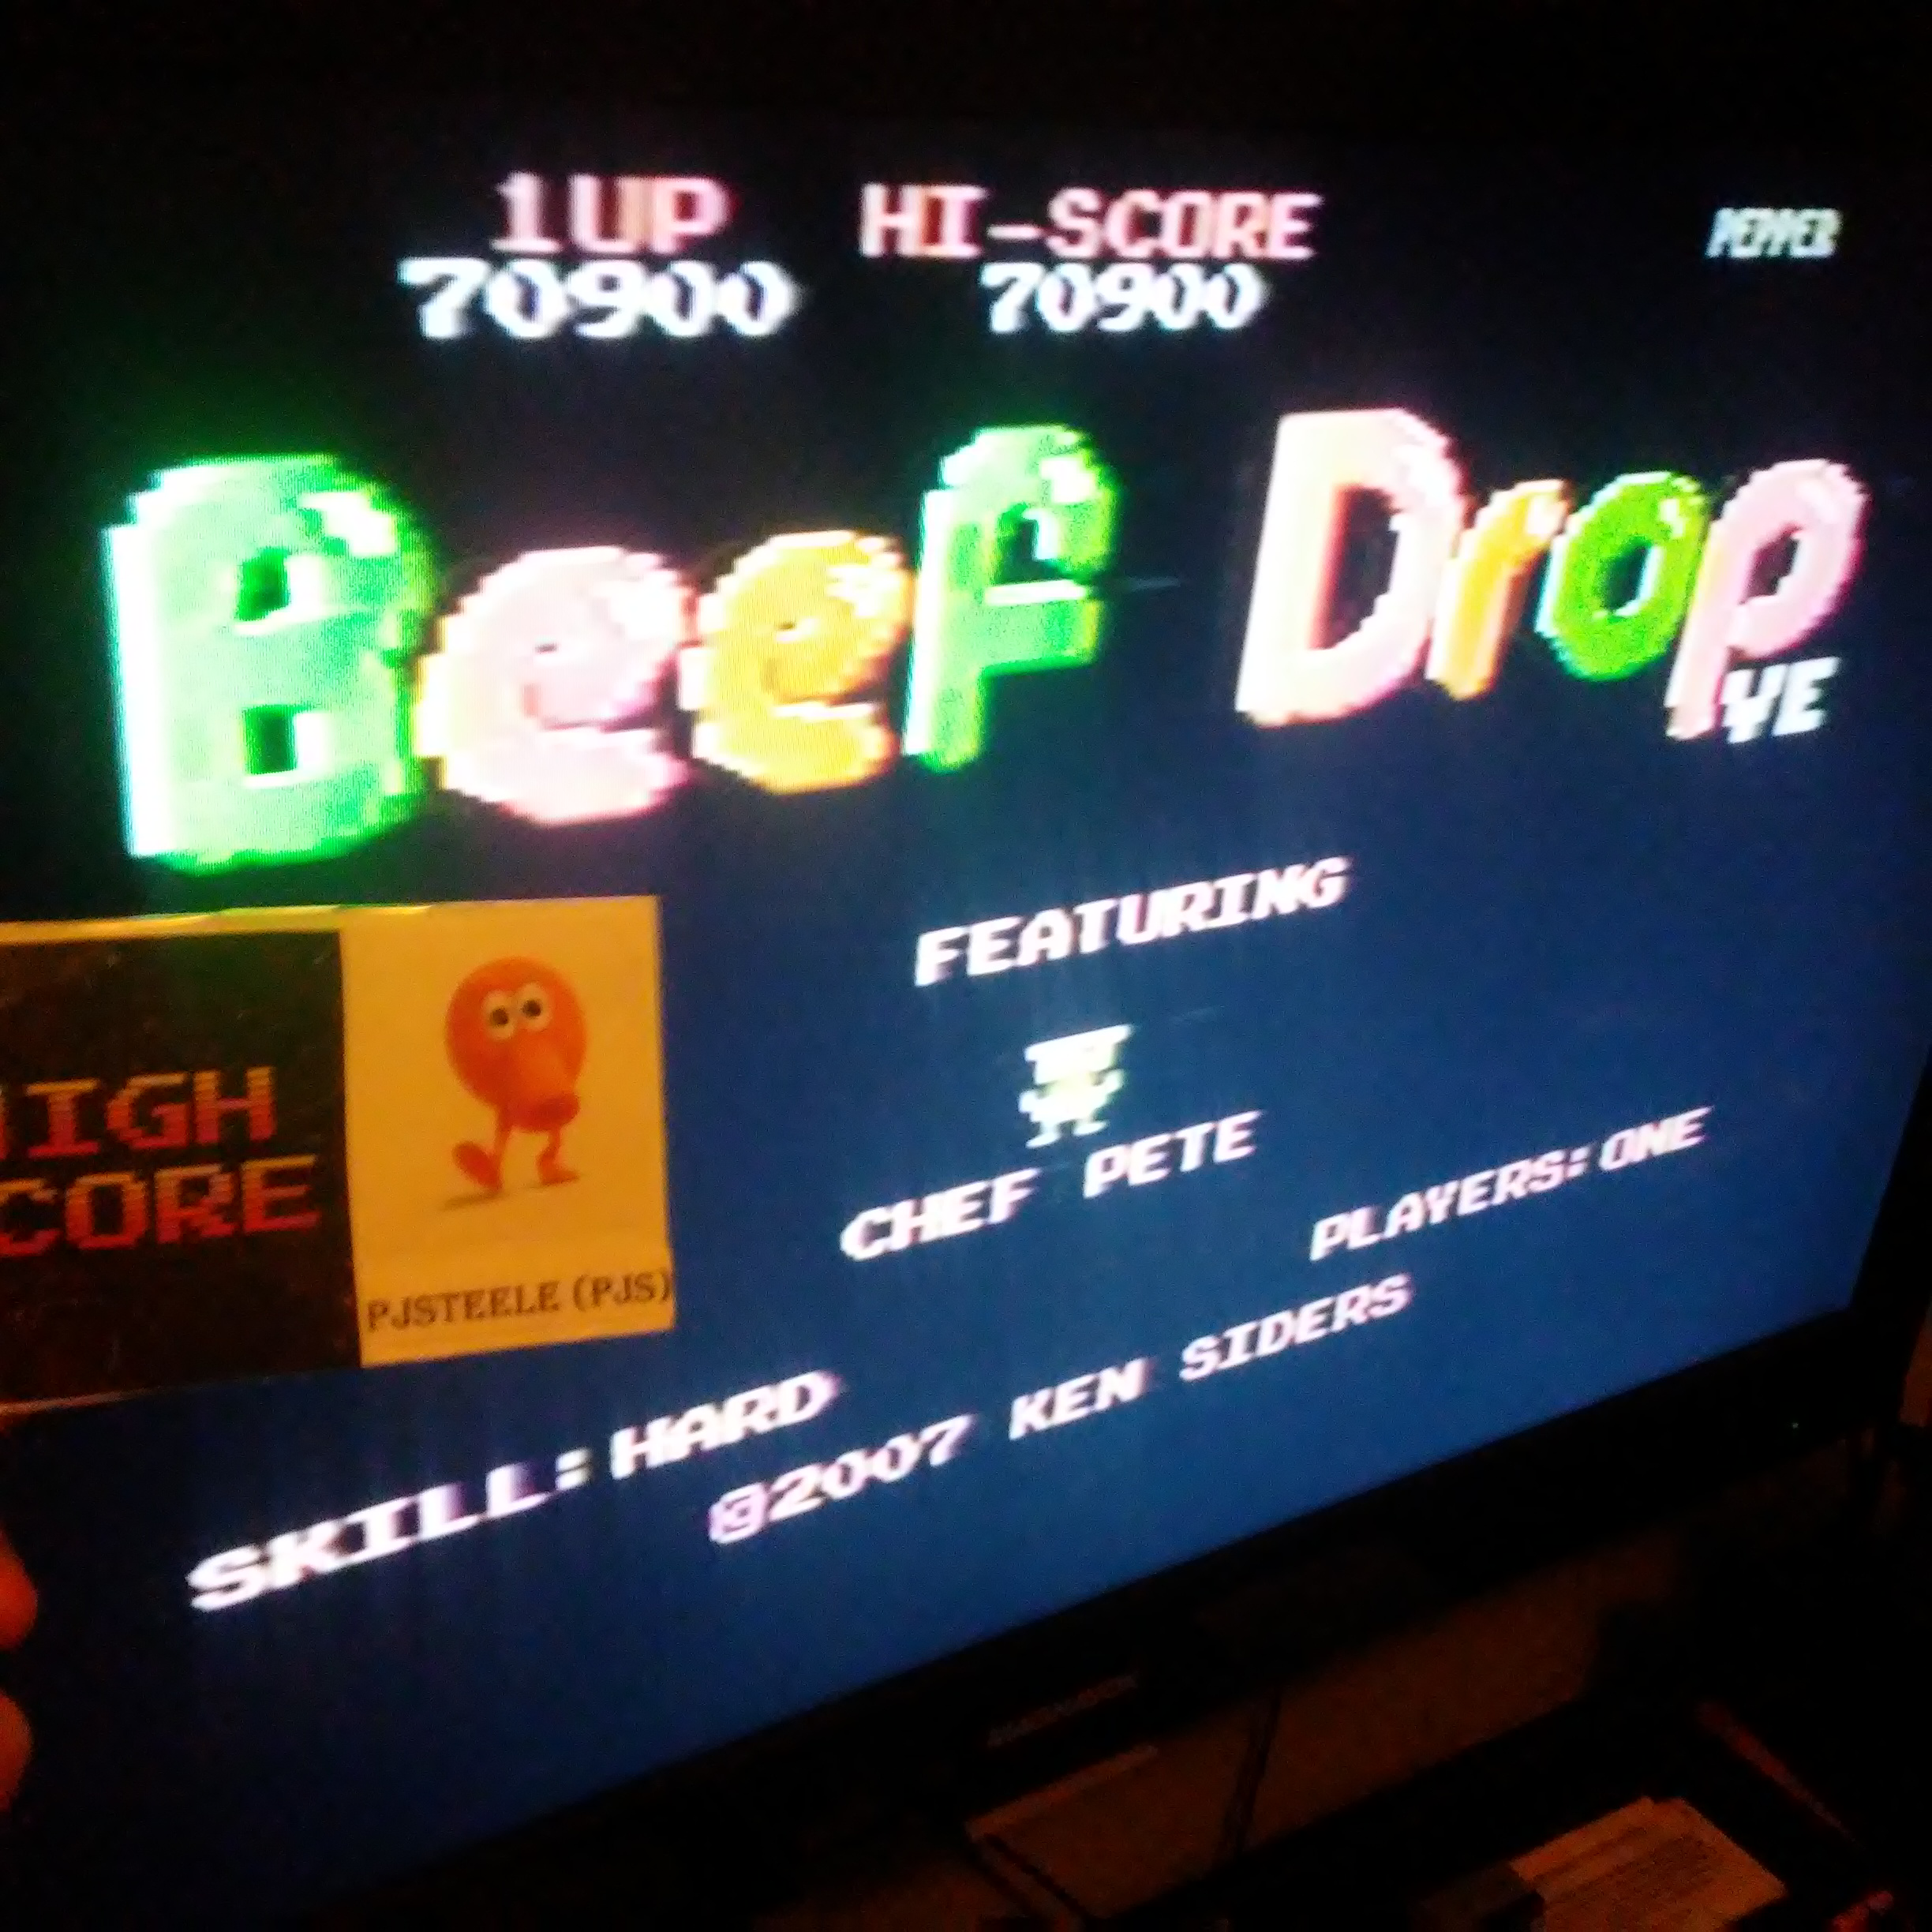 Pjsteele: Beef Drop VE [Hard] (Atari 7800) 70,900 points on 2018-10-23 21:51:39